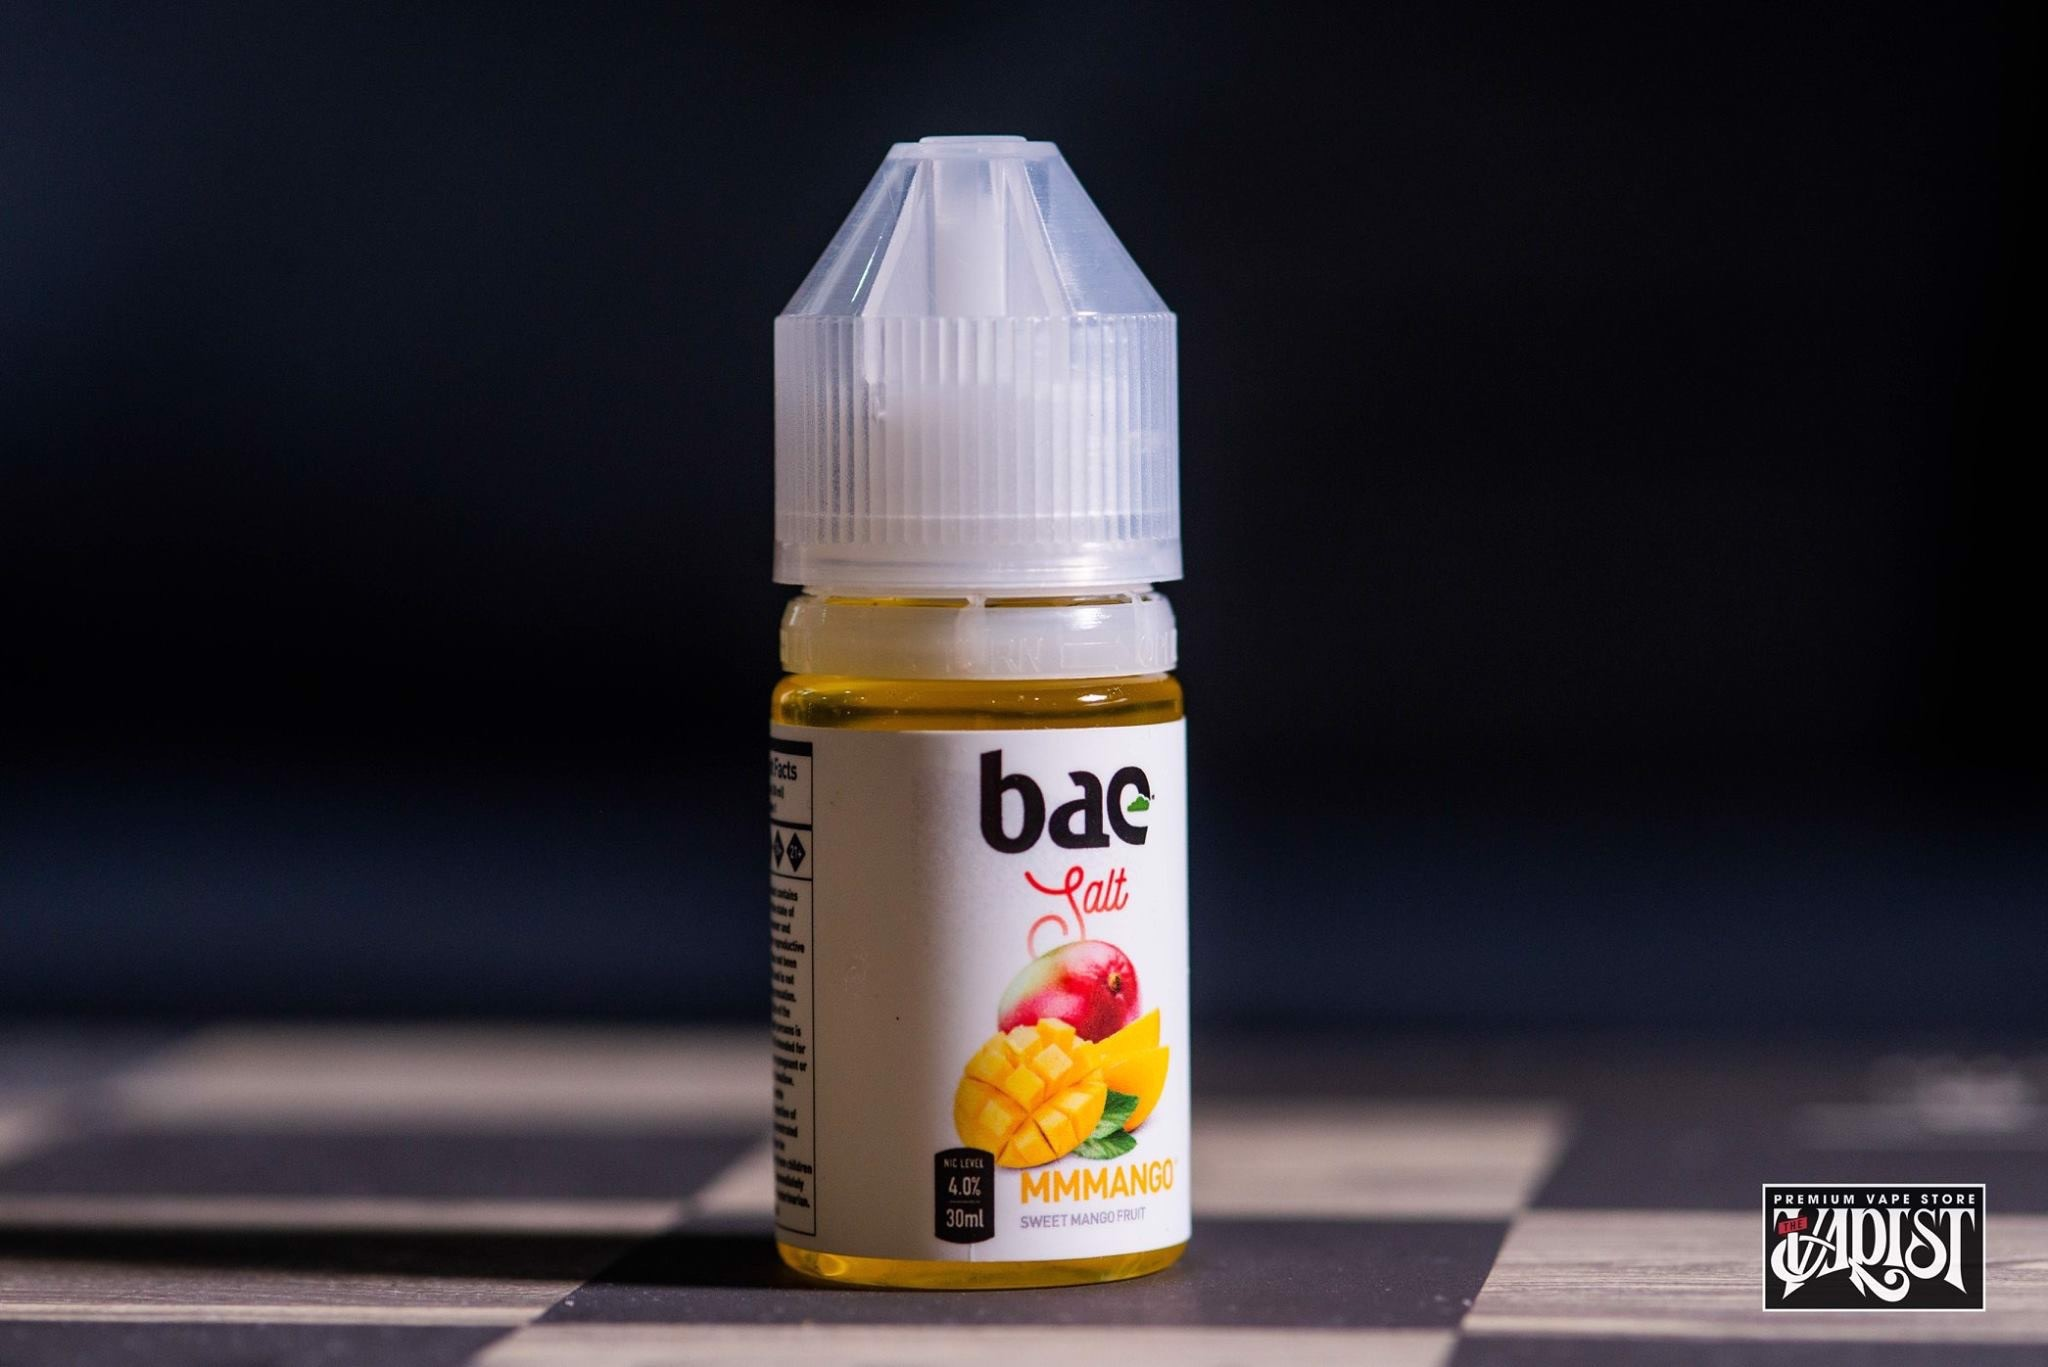 Bae Ice by Nuage